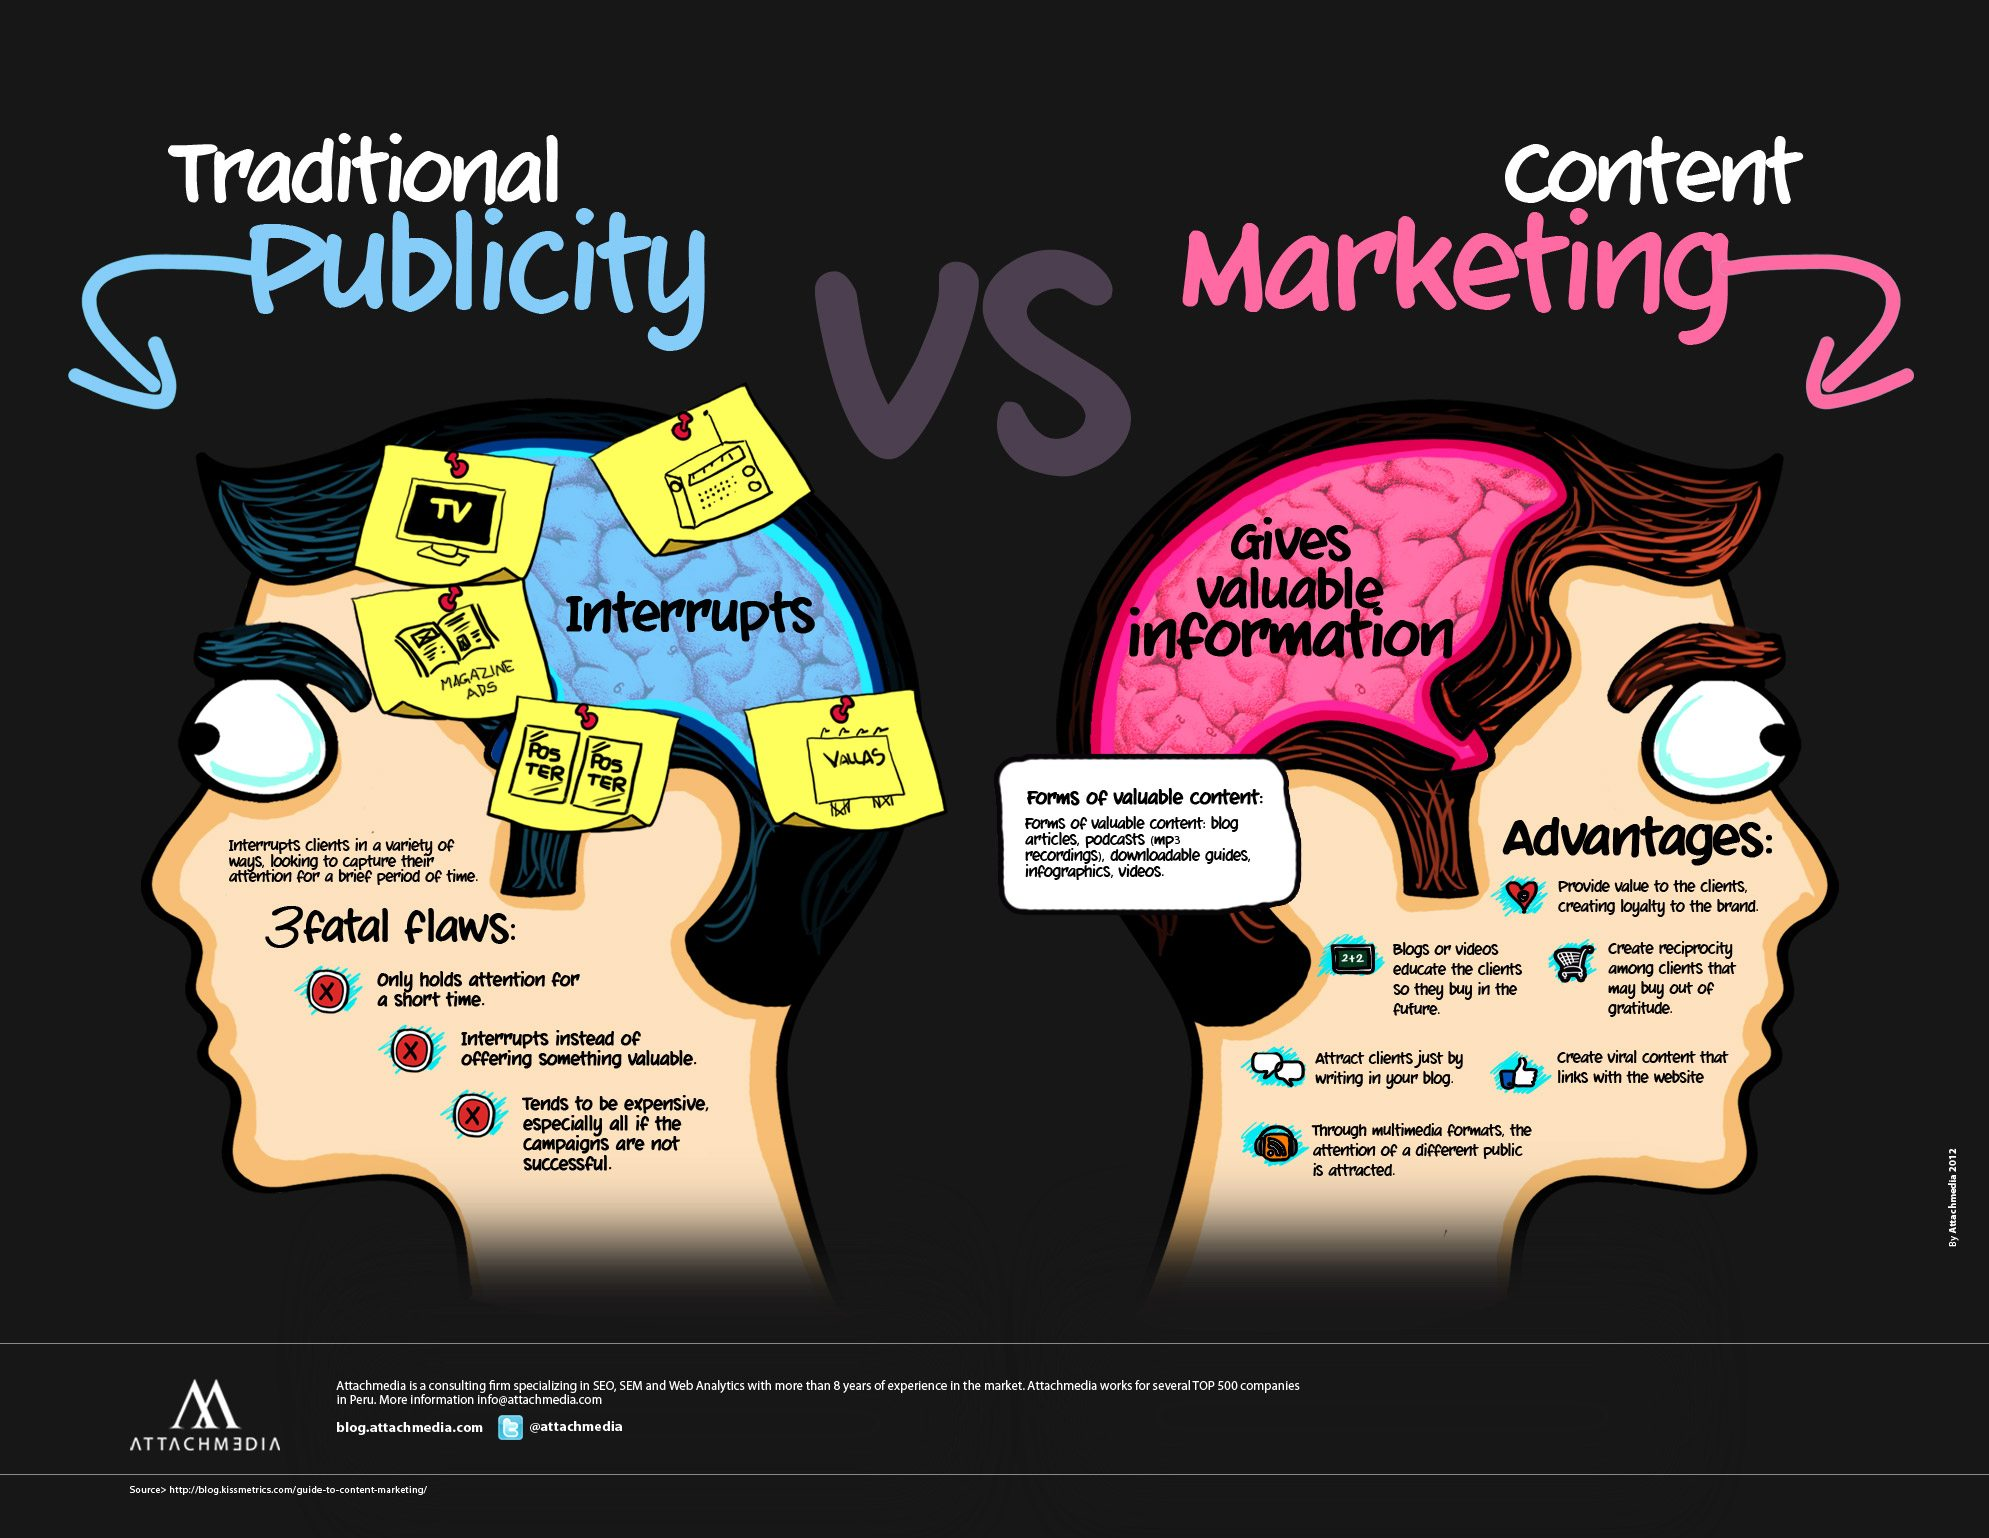 Content Marketing by Attachmedia